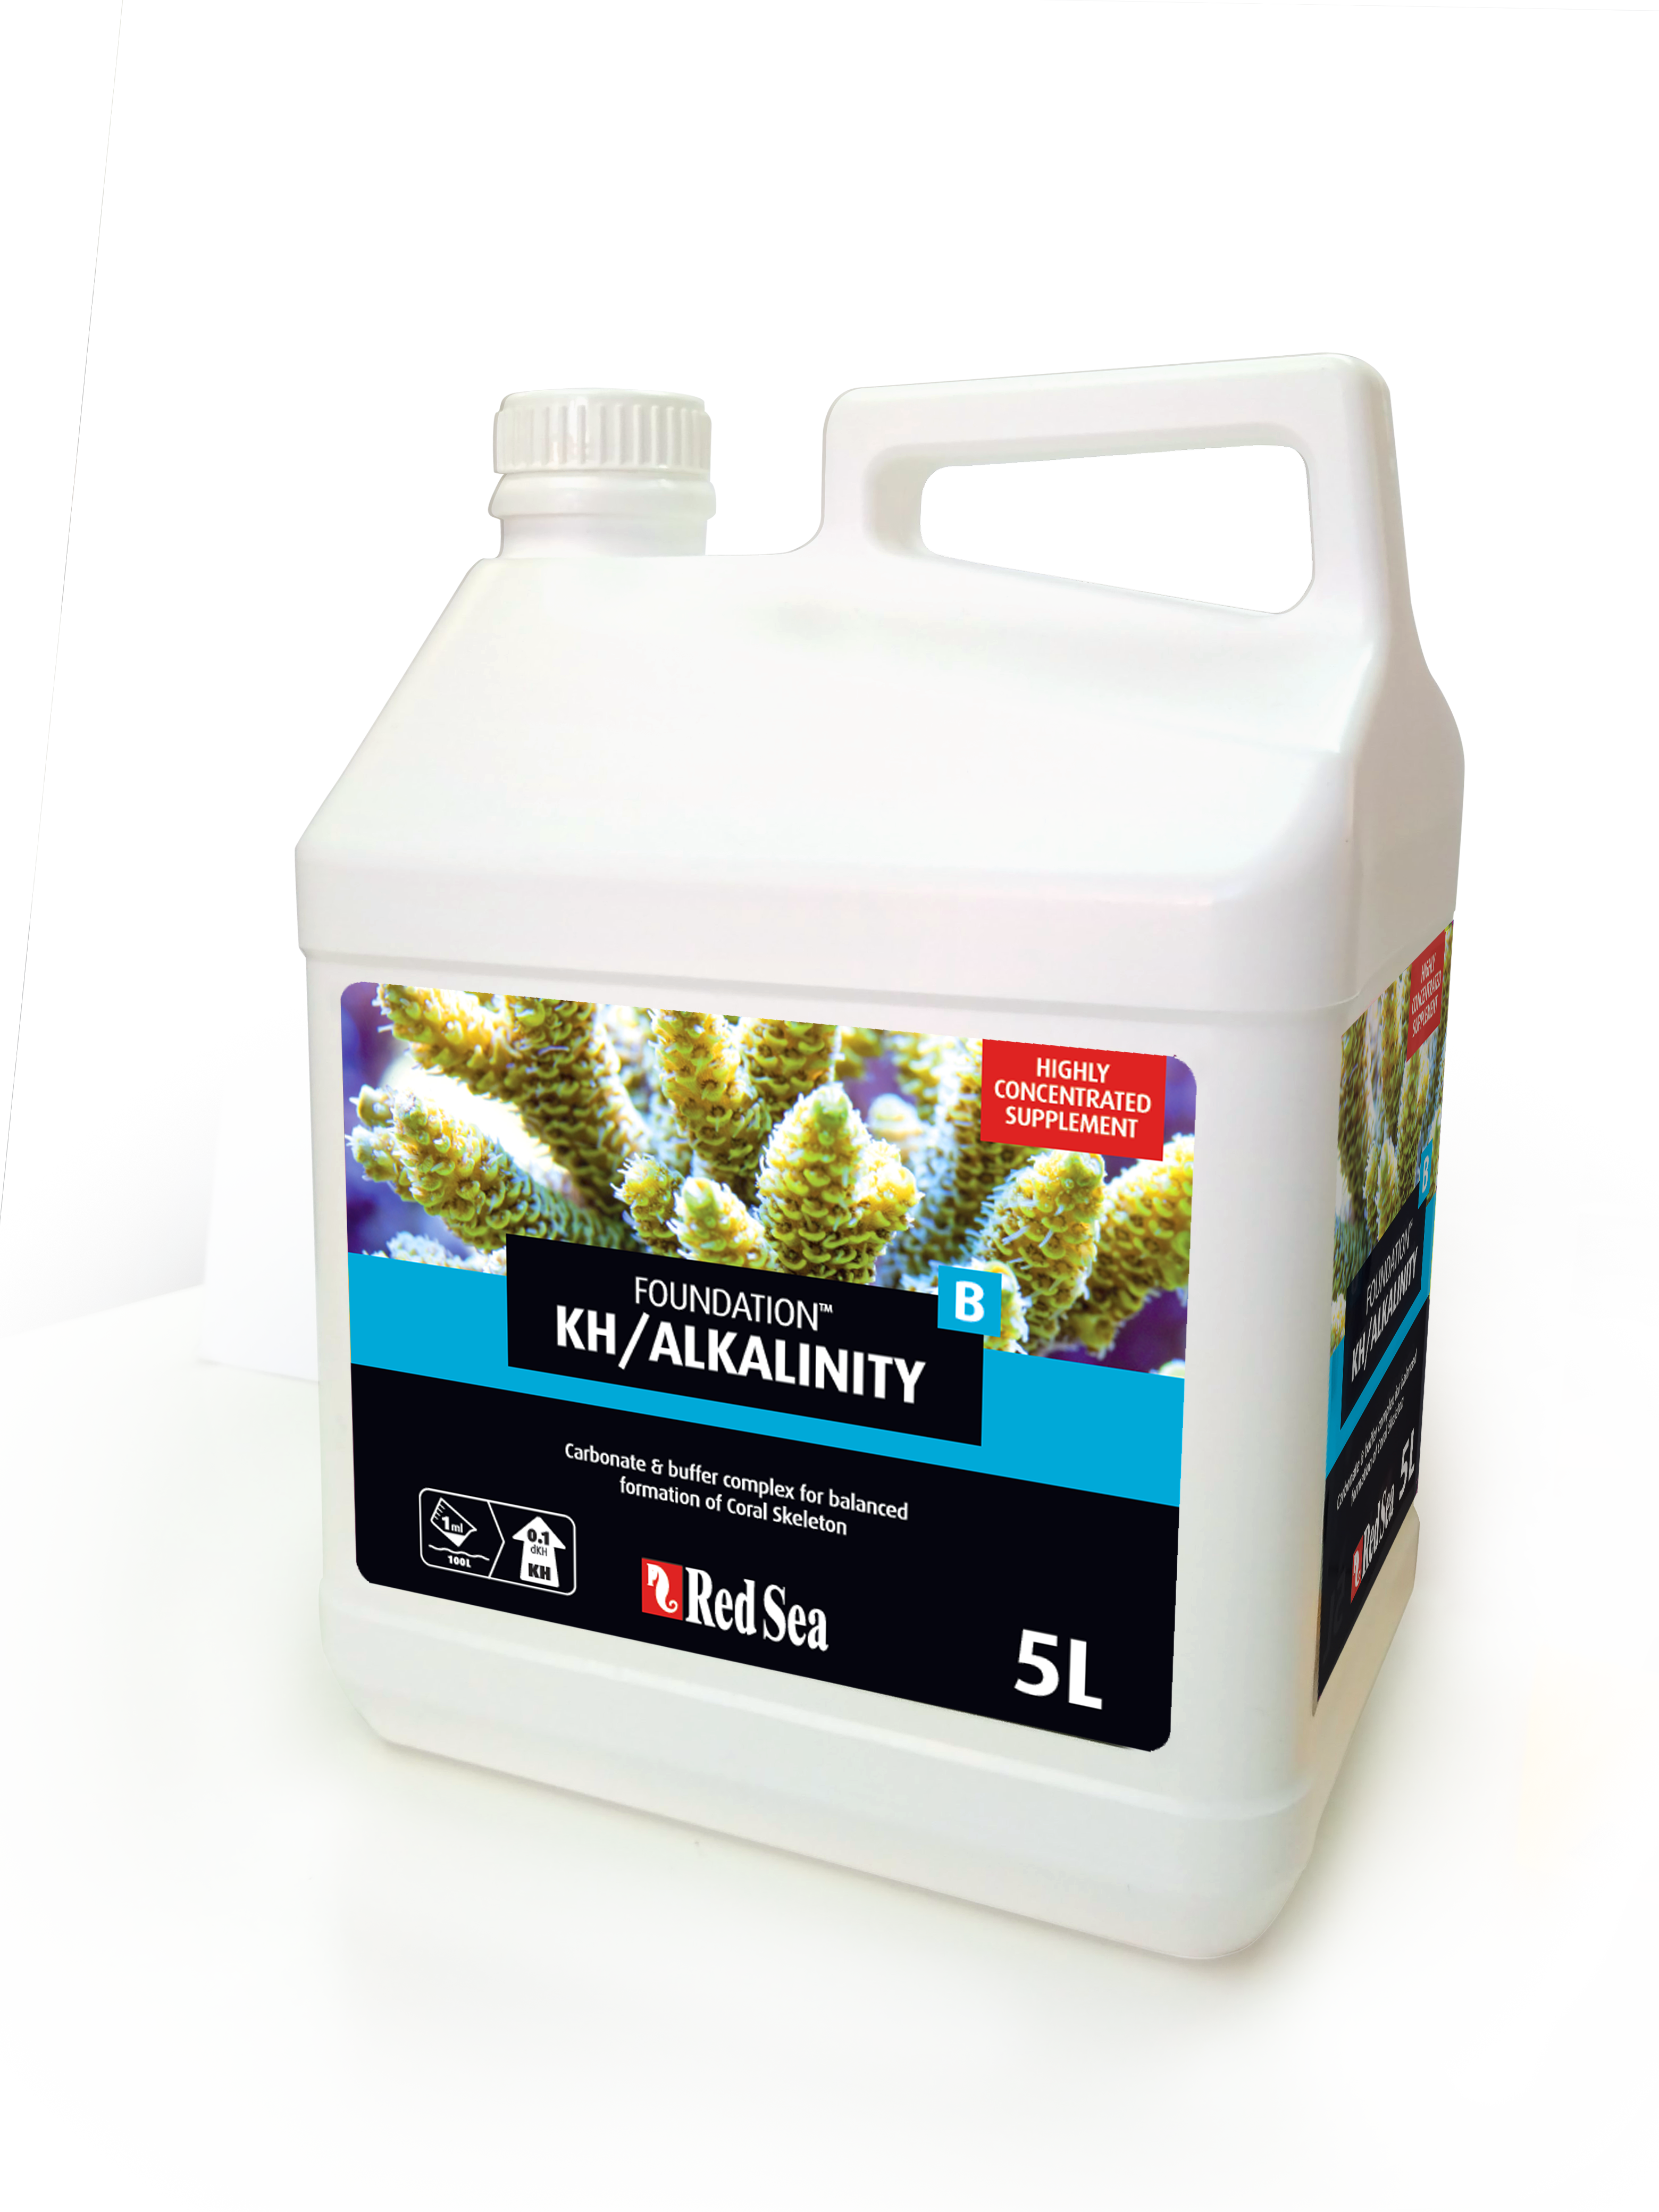 Foundation  KH/Alkalinity (Alk) - 5 Litre (Foundation B)